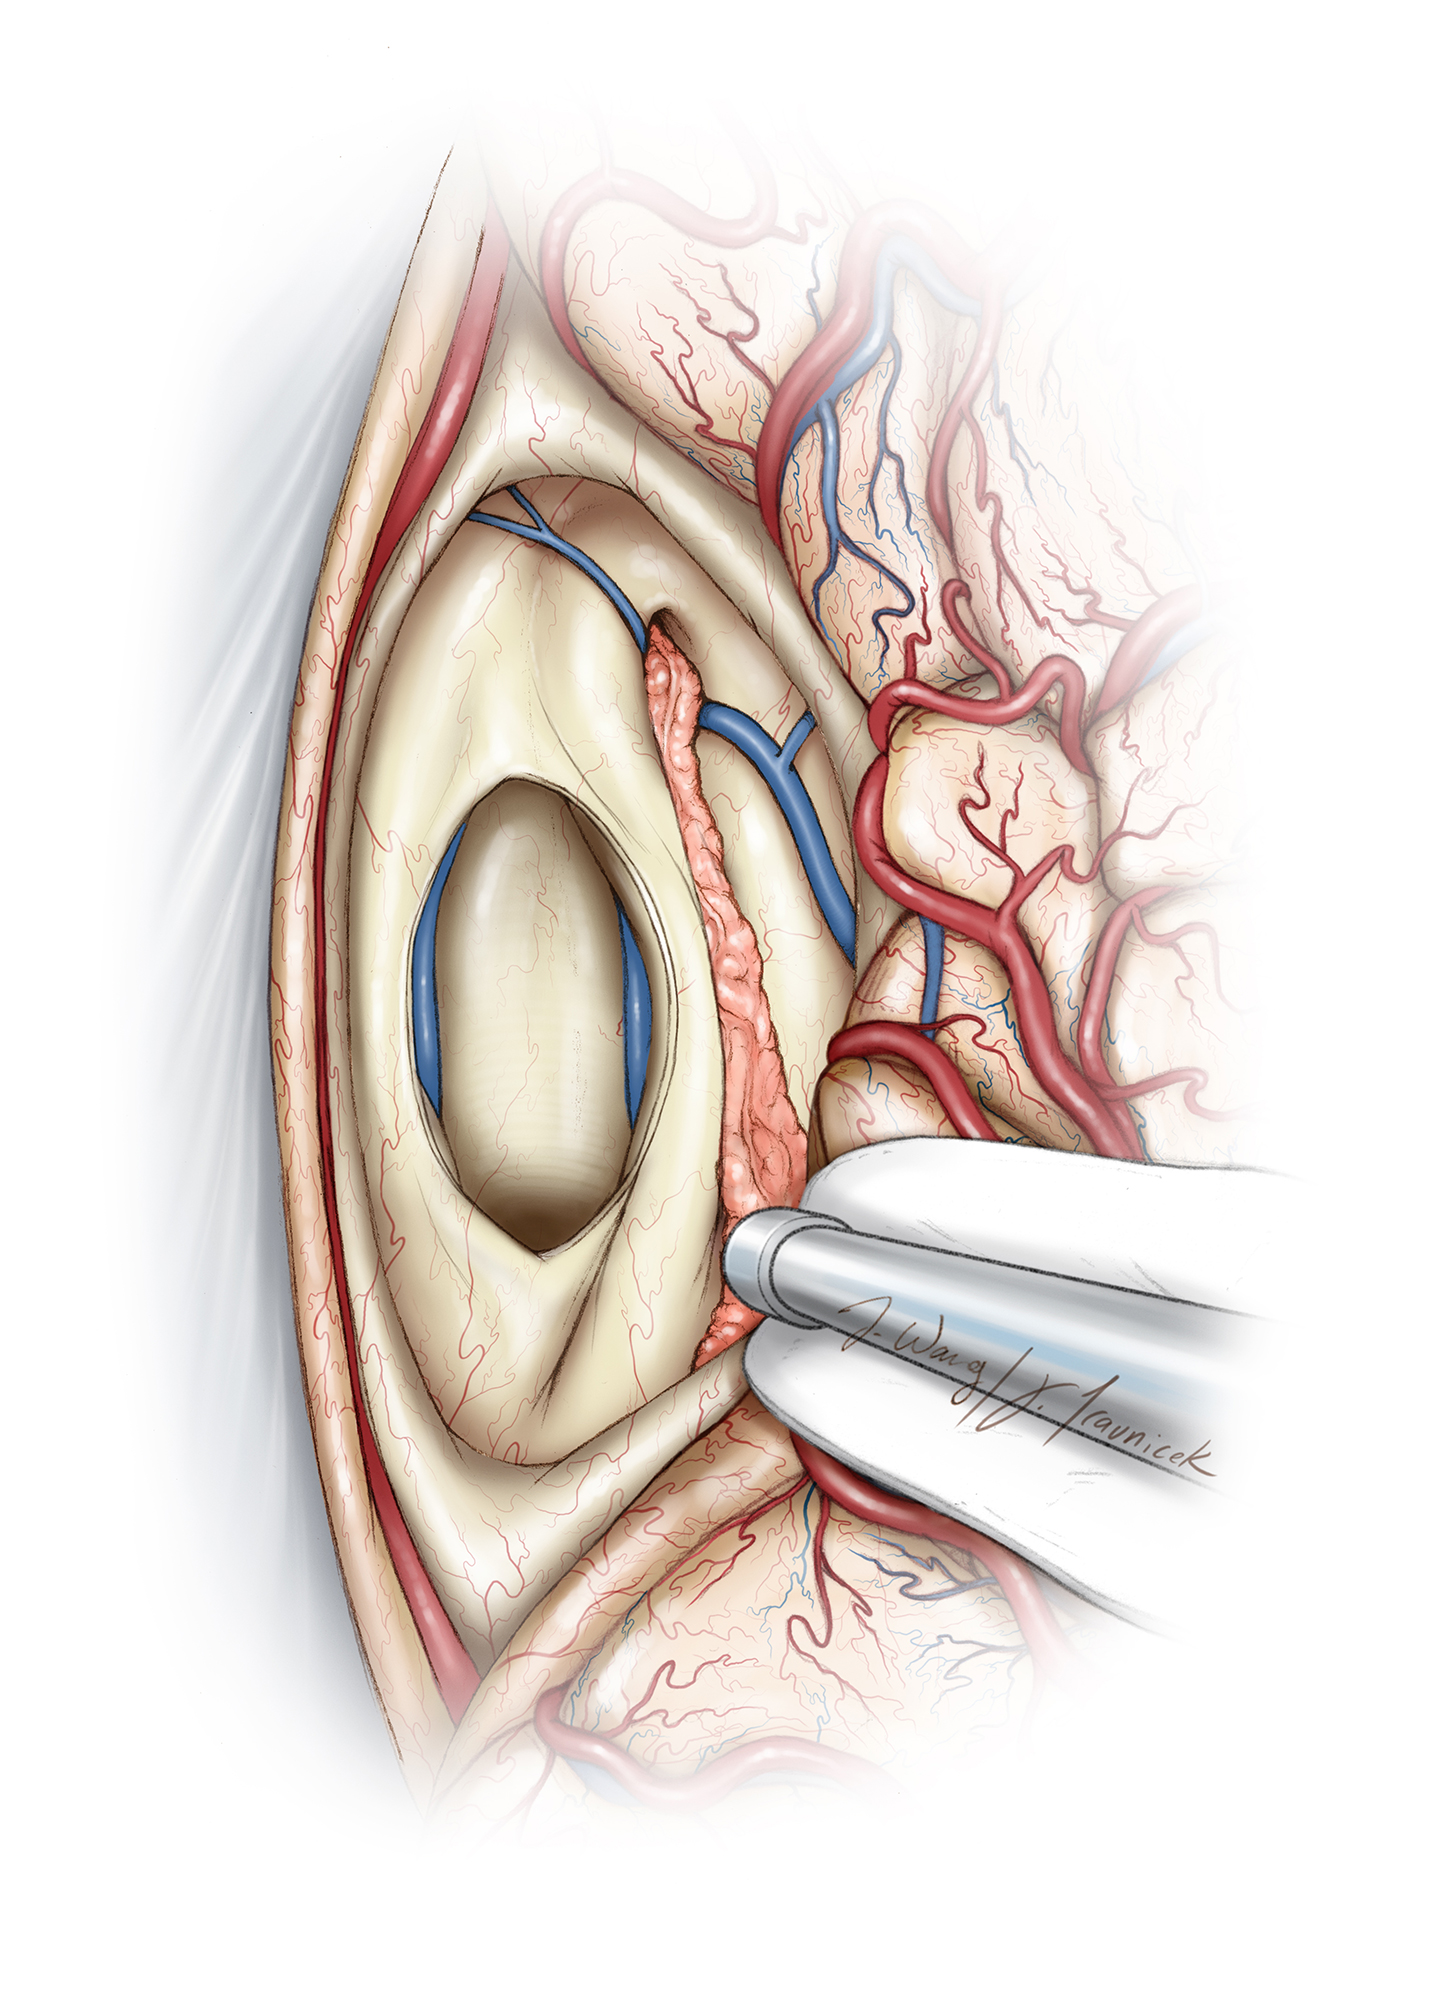 Figure 12: I often place a small cottonoid patty at the floor to prevent dispersion of the debris, especially if a shunt is in place. At this point, I can usually separate the tumor from the pial-arachnoid boundary around the tectal plate and superior cerebellum. Larger tumors invade the tectum, and gross total resection of the mass exposes the fourth ventricle. A distinct arachnoid plane separates the vein of Galen from the tumor capsule (Redrawn from Tew, van Loveren, Keller*).